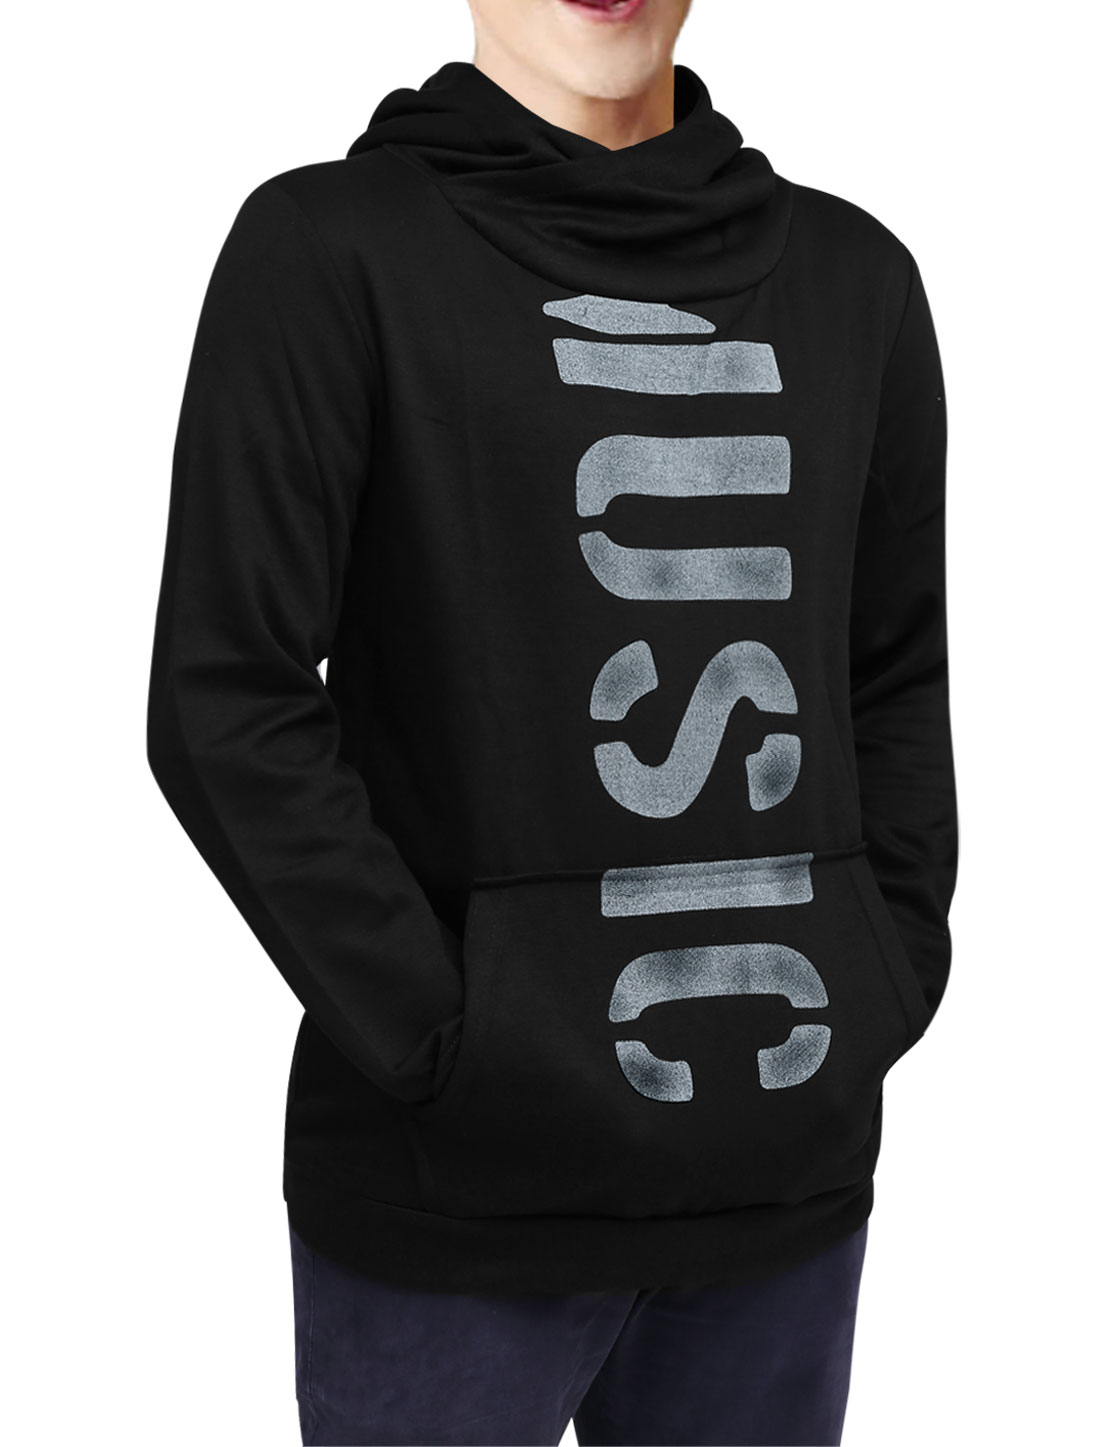 Men Slipover Long Sleeve Letters Printed Hooded Sweatshirt Black M